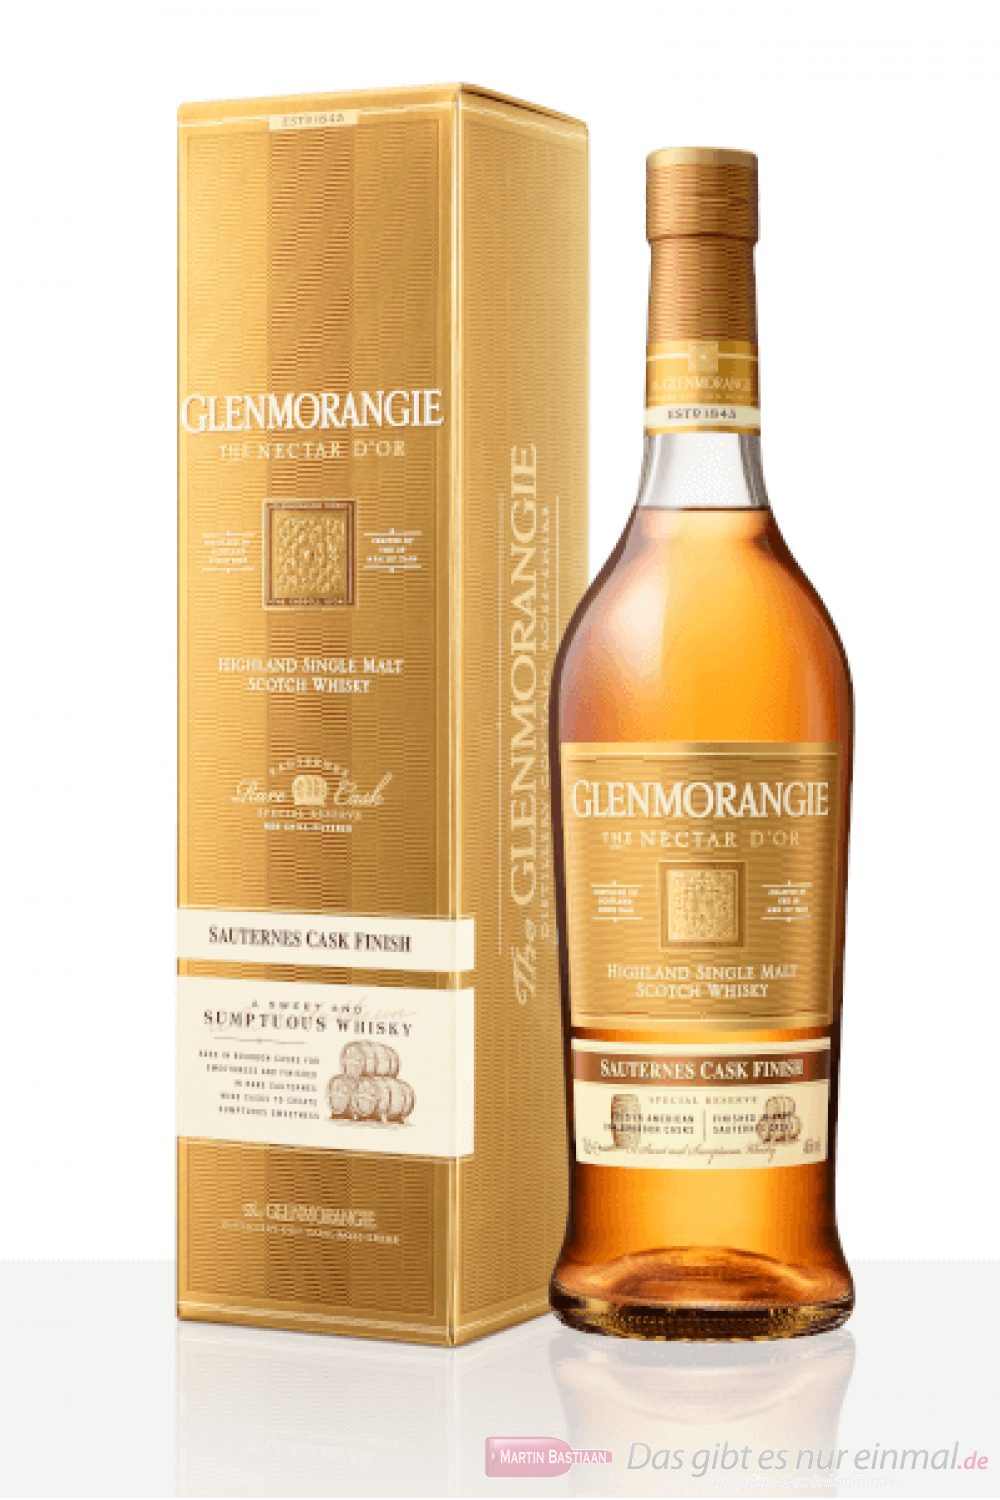 Glenmorangie The Nectar d'Or Highland Single Malt Scotch Whisky 0,7l